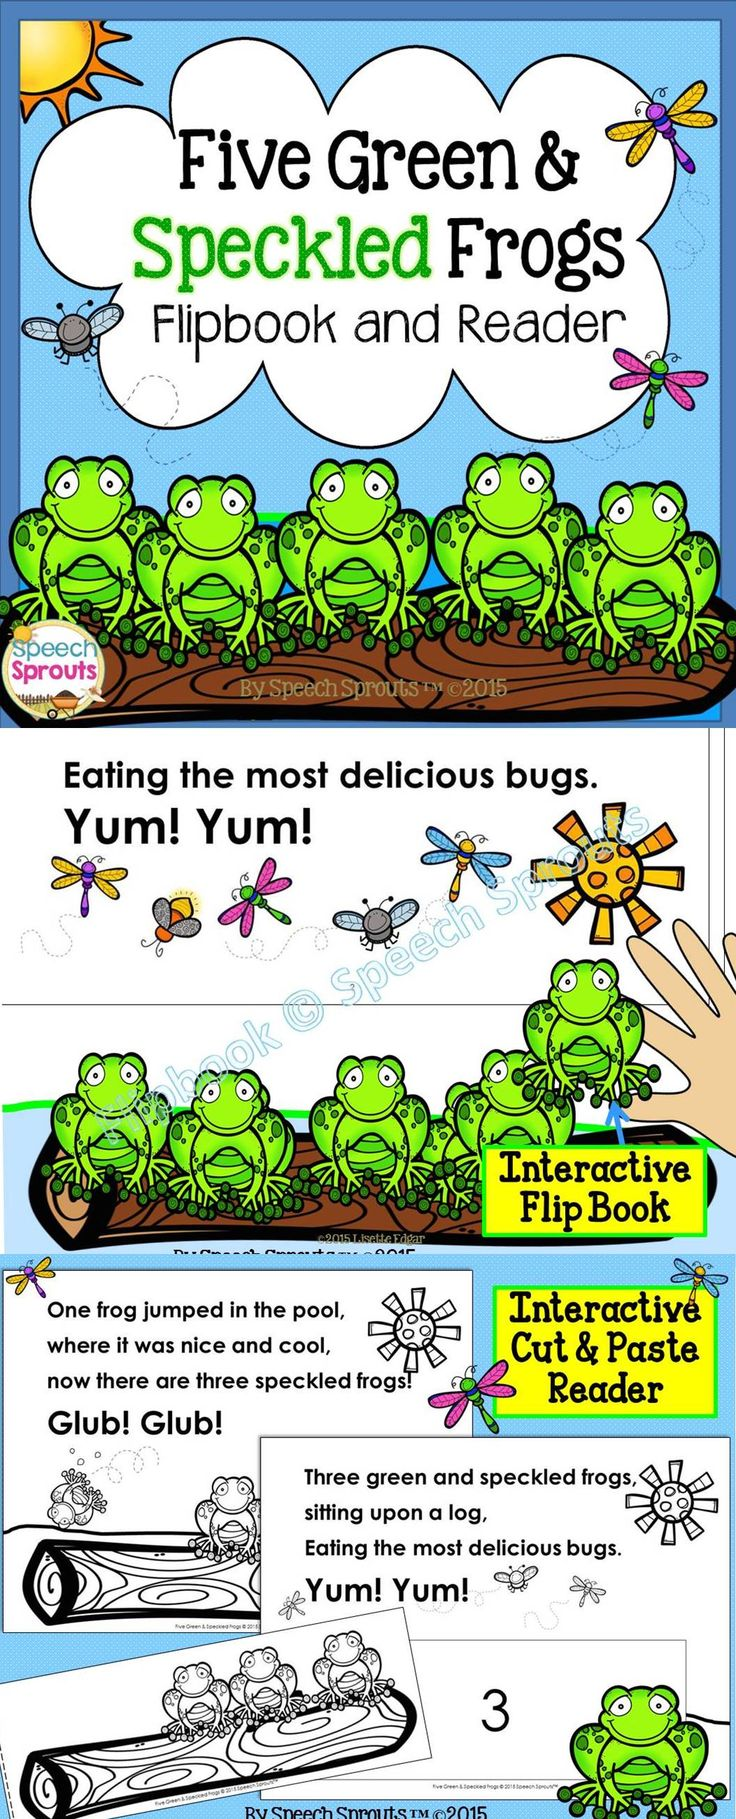 $ Count down as these adorable frogs jump into pond! Ribbit! Interactive with removable frogs and a fun cut and paste reader to teach story re-tell and rhyme.